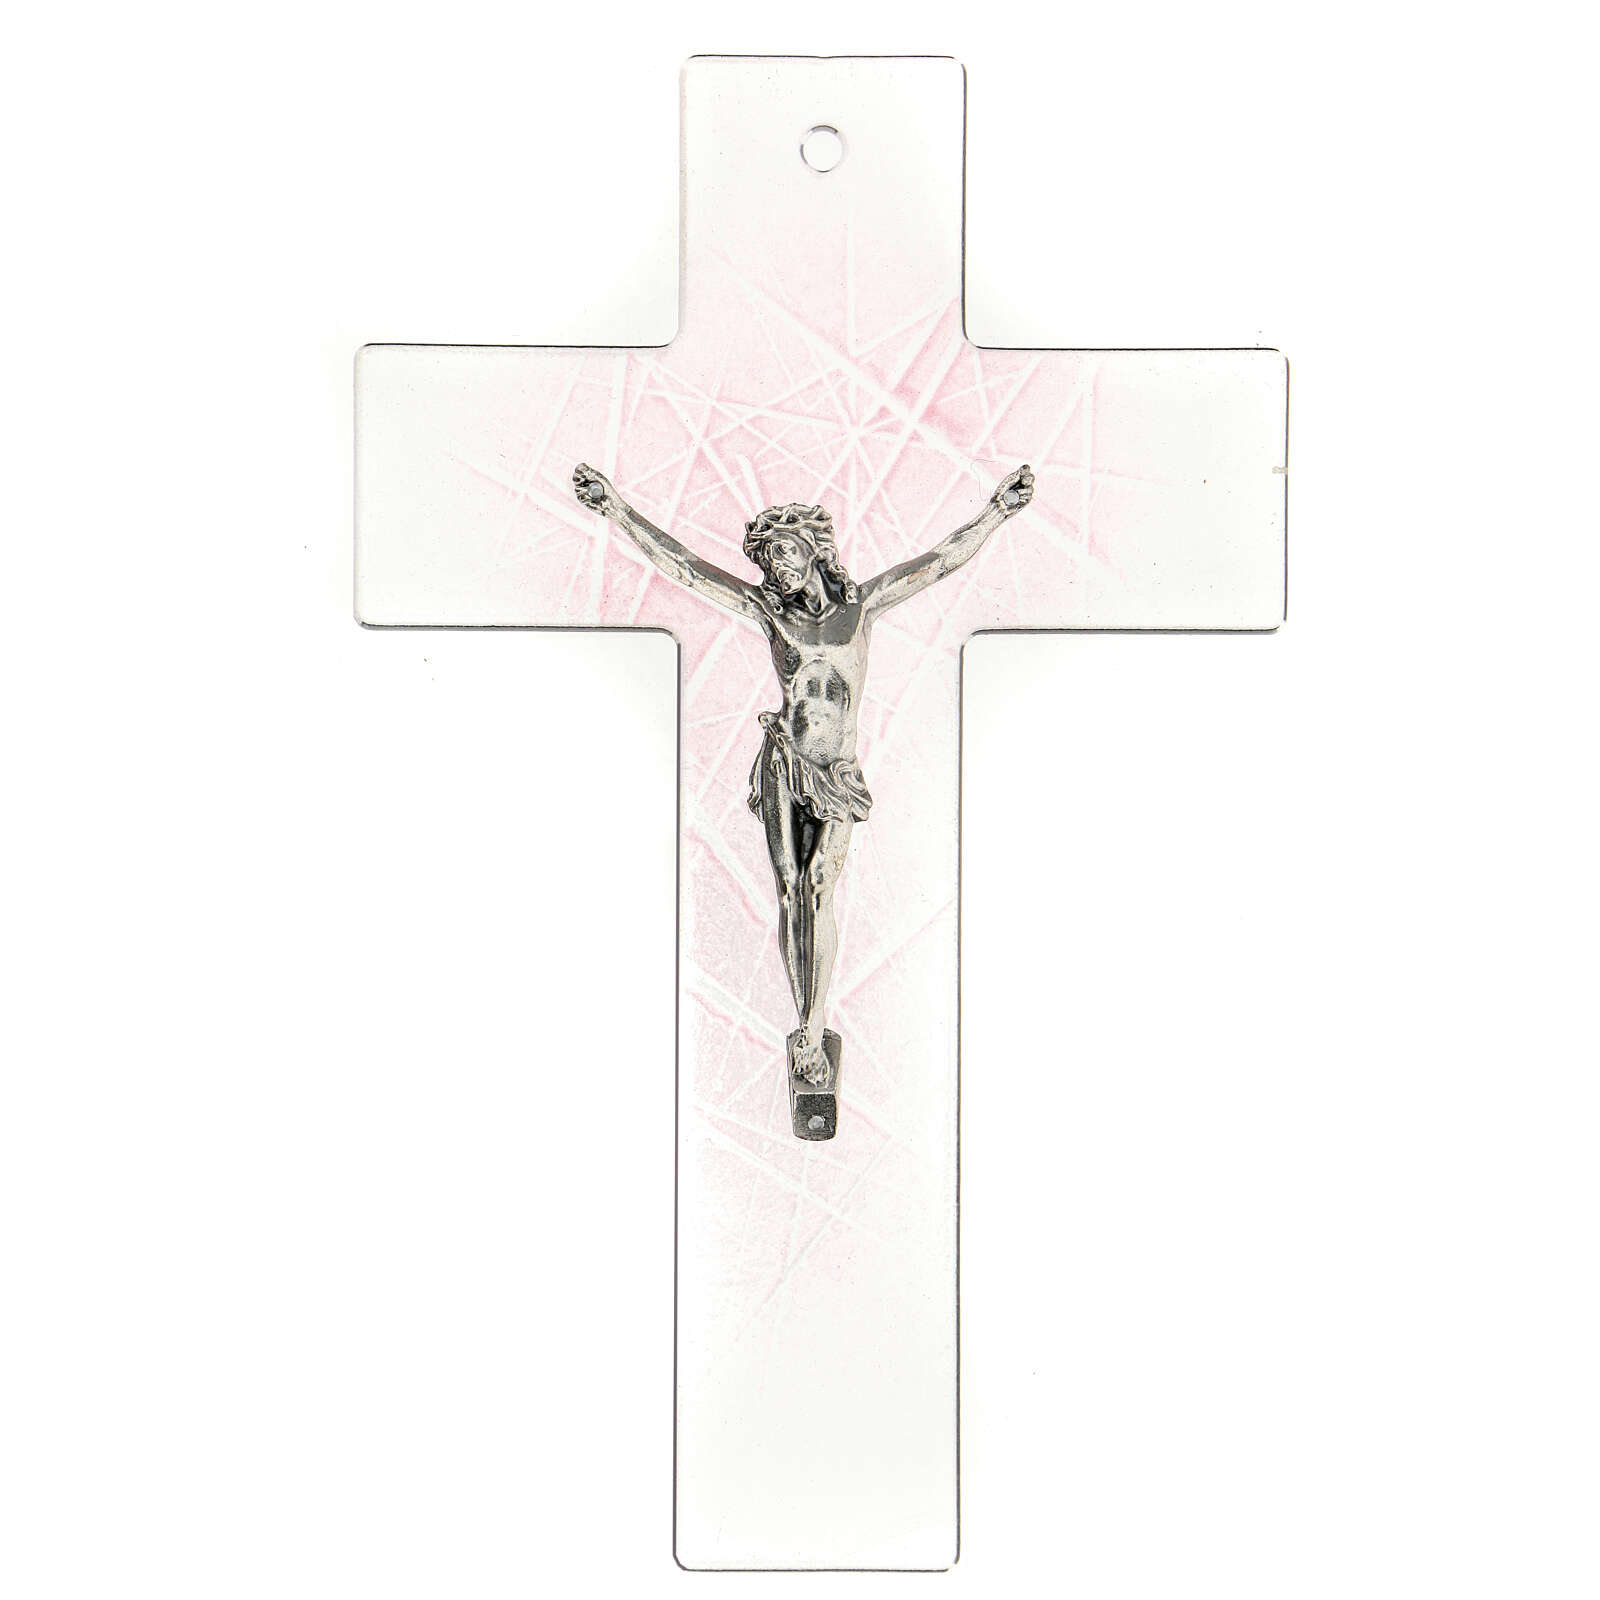 Modern crucifix in Murano glass with pink shades 8x5 inc 4